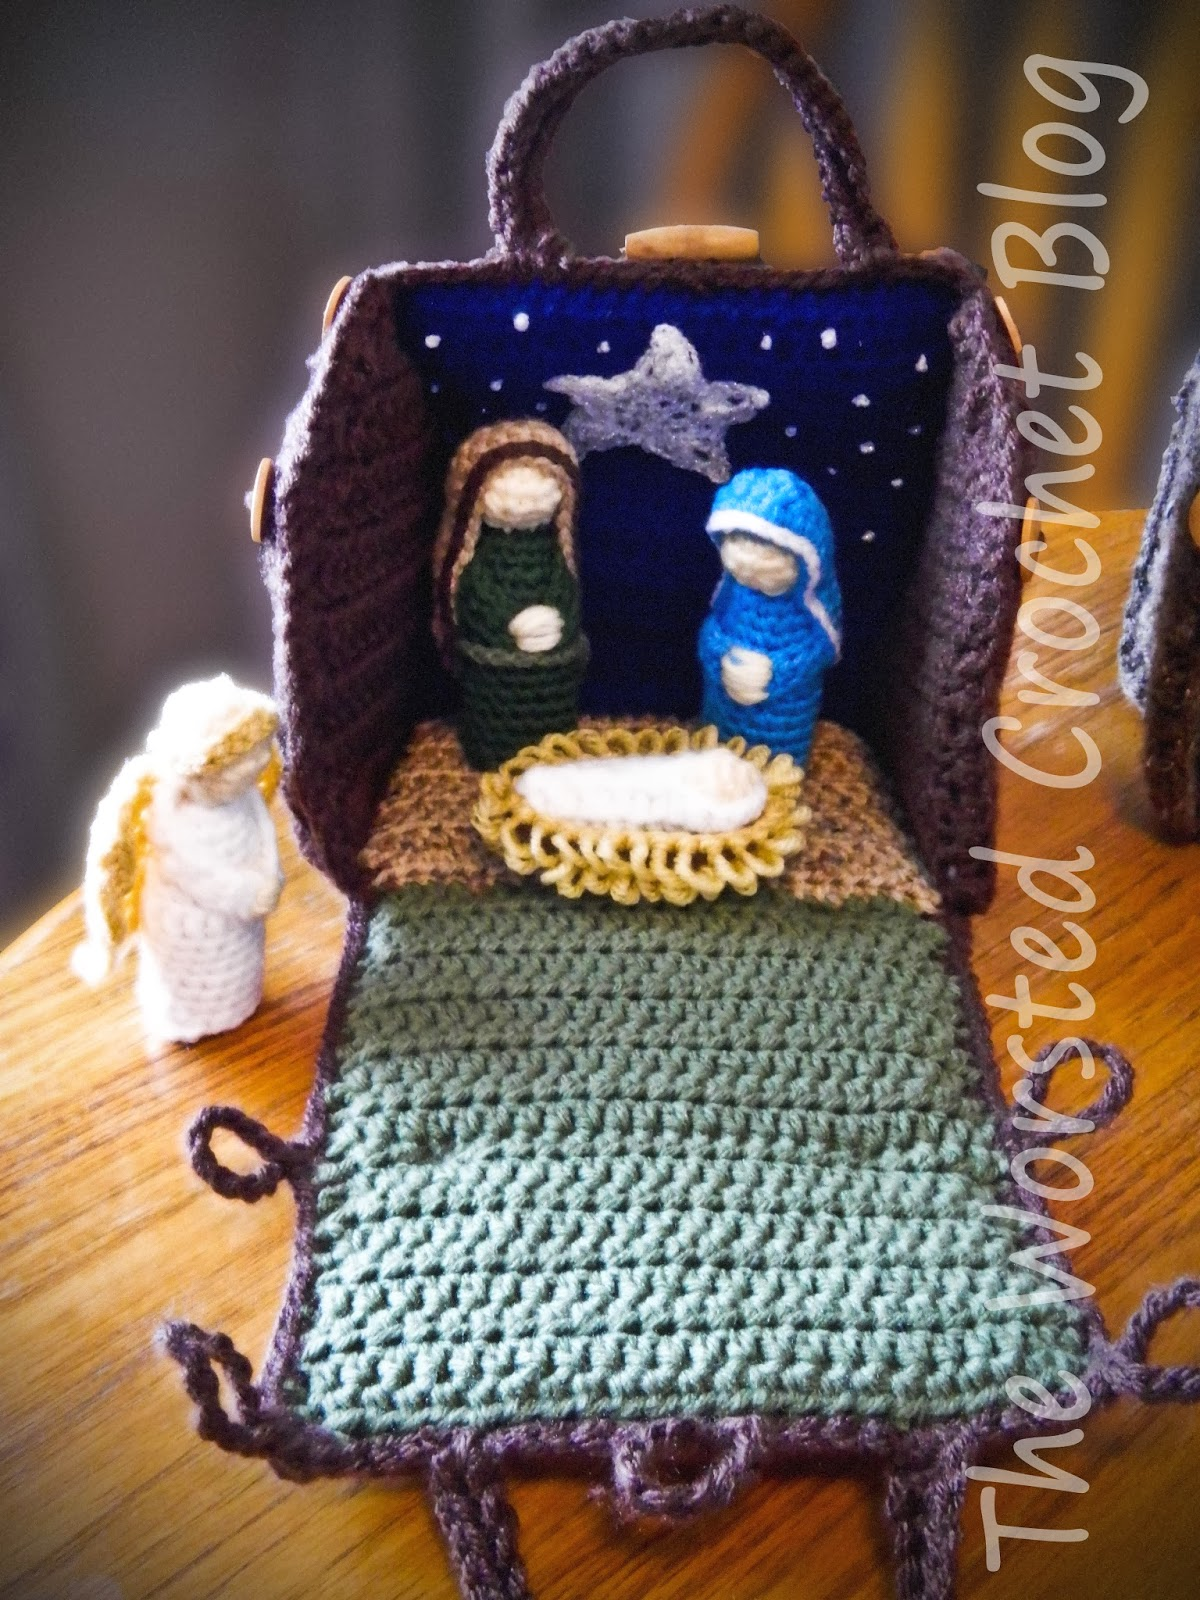 Knitting Patterns Nativity Free : The Worsted Crochet Blog: Crochet Nativity Set (Part 2 ...